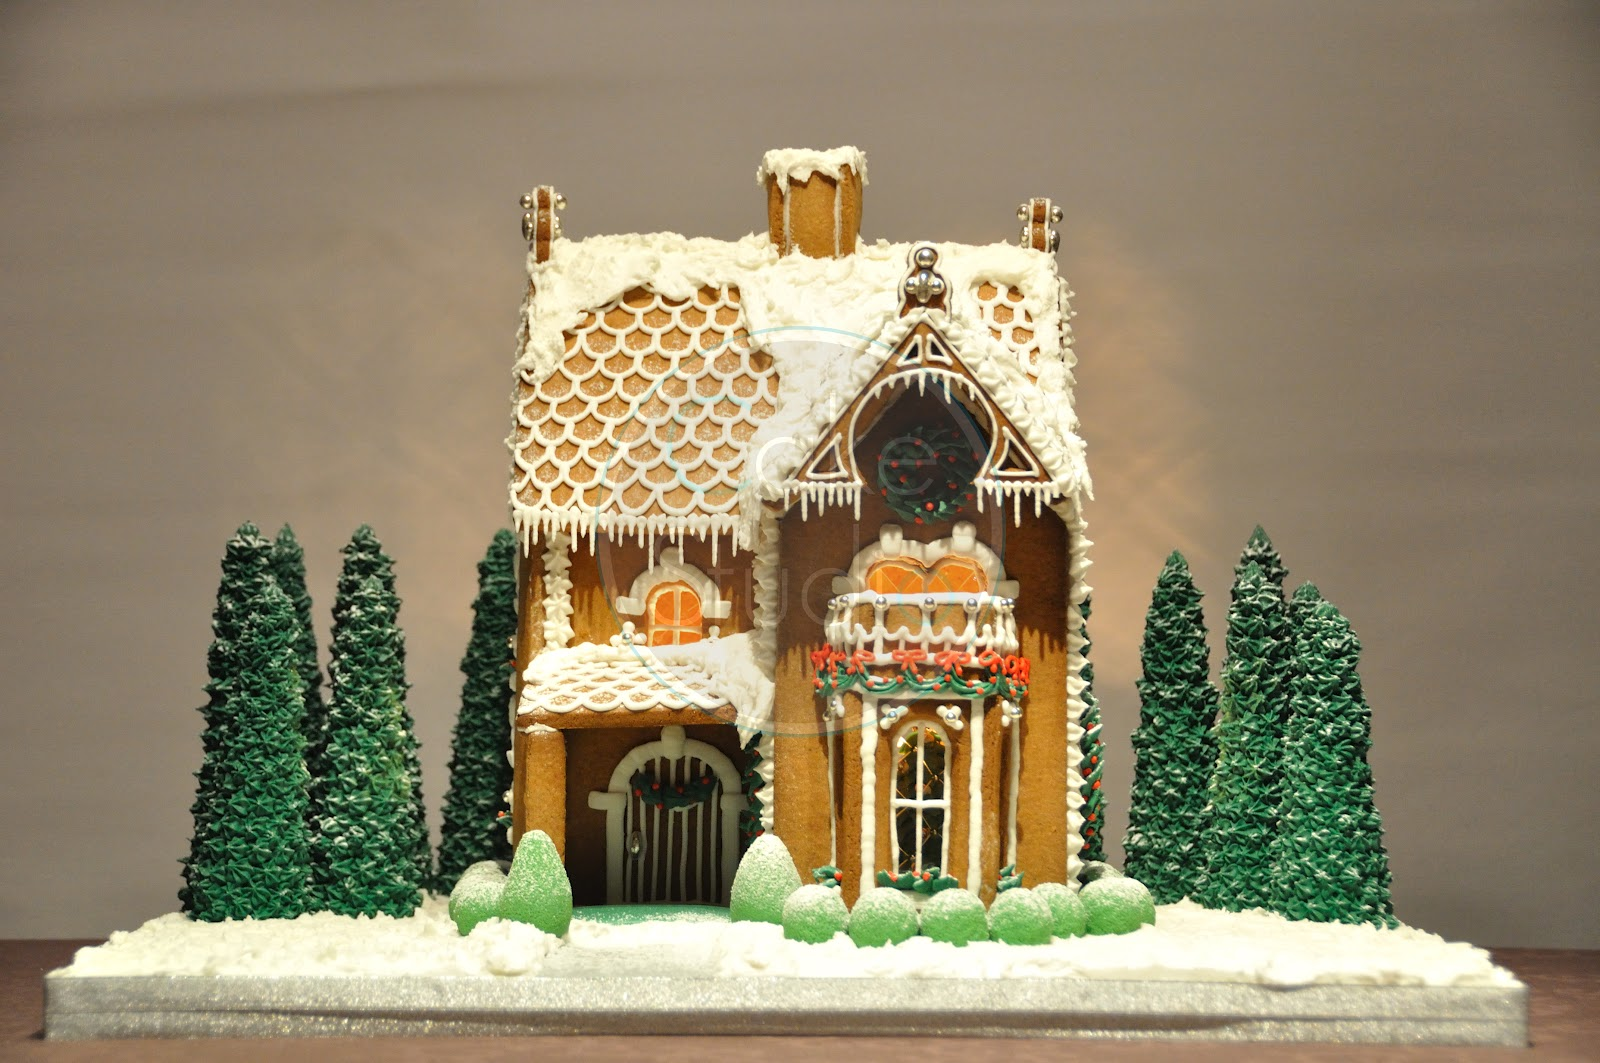 Victorian Gingerbread House Template A very lovely gingerbread